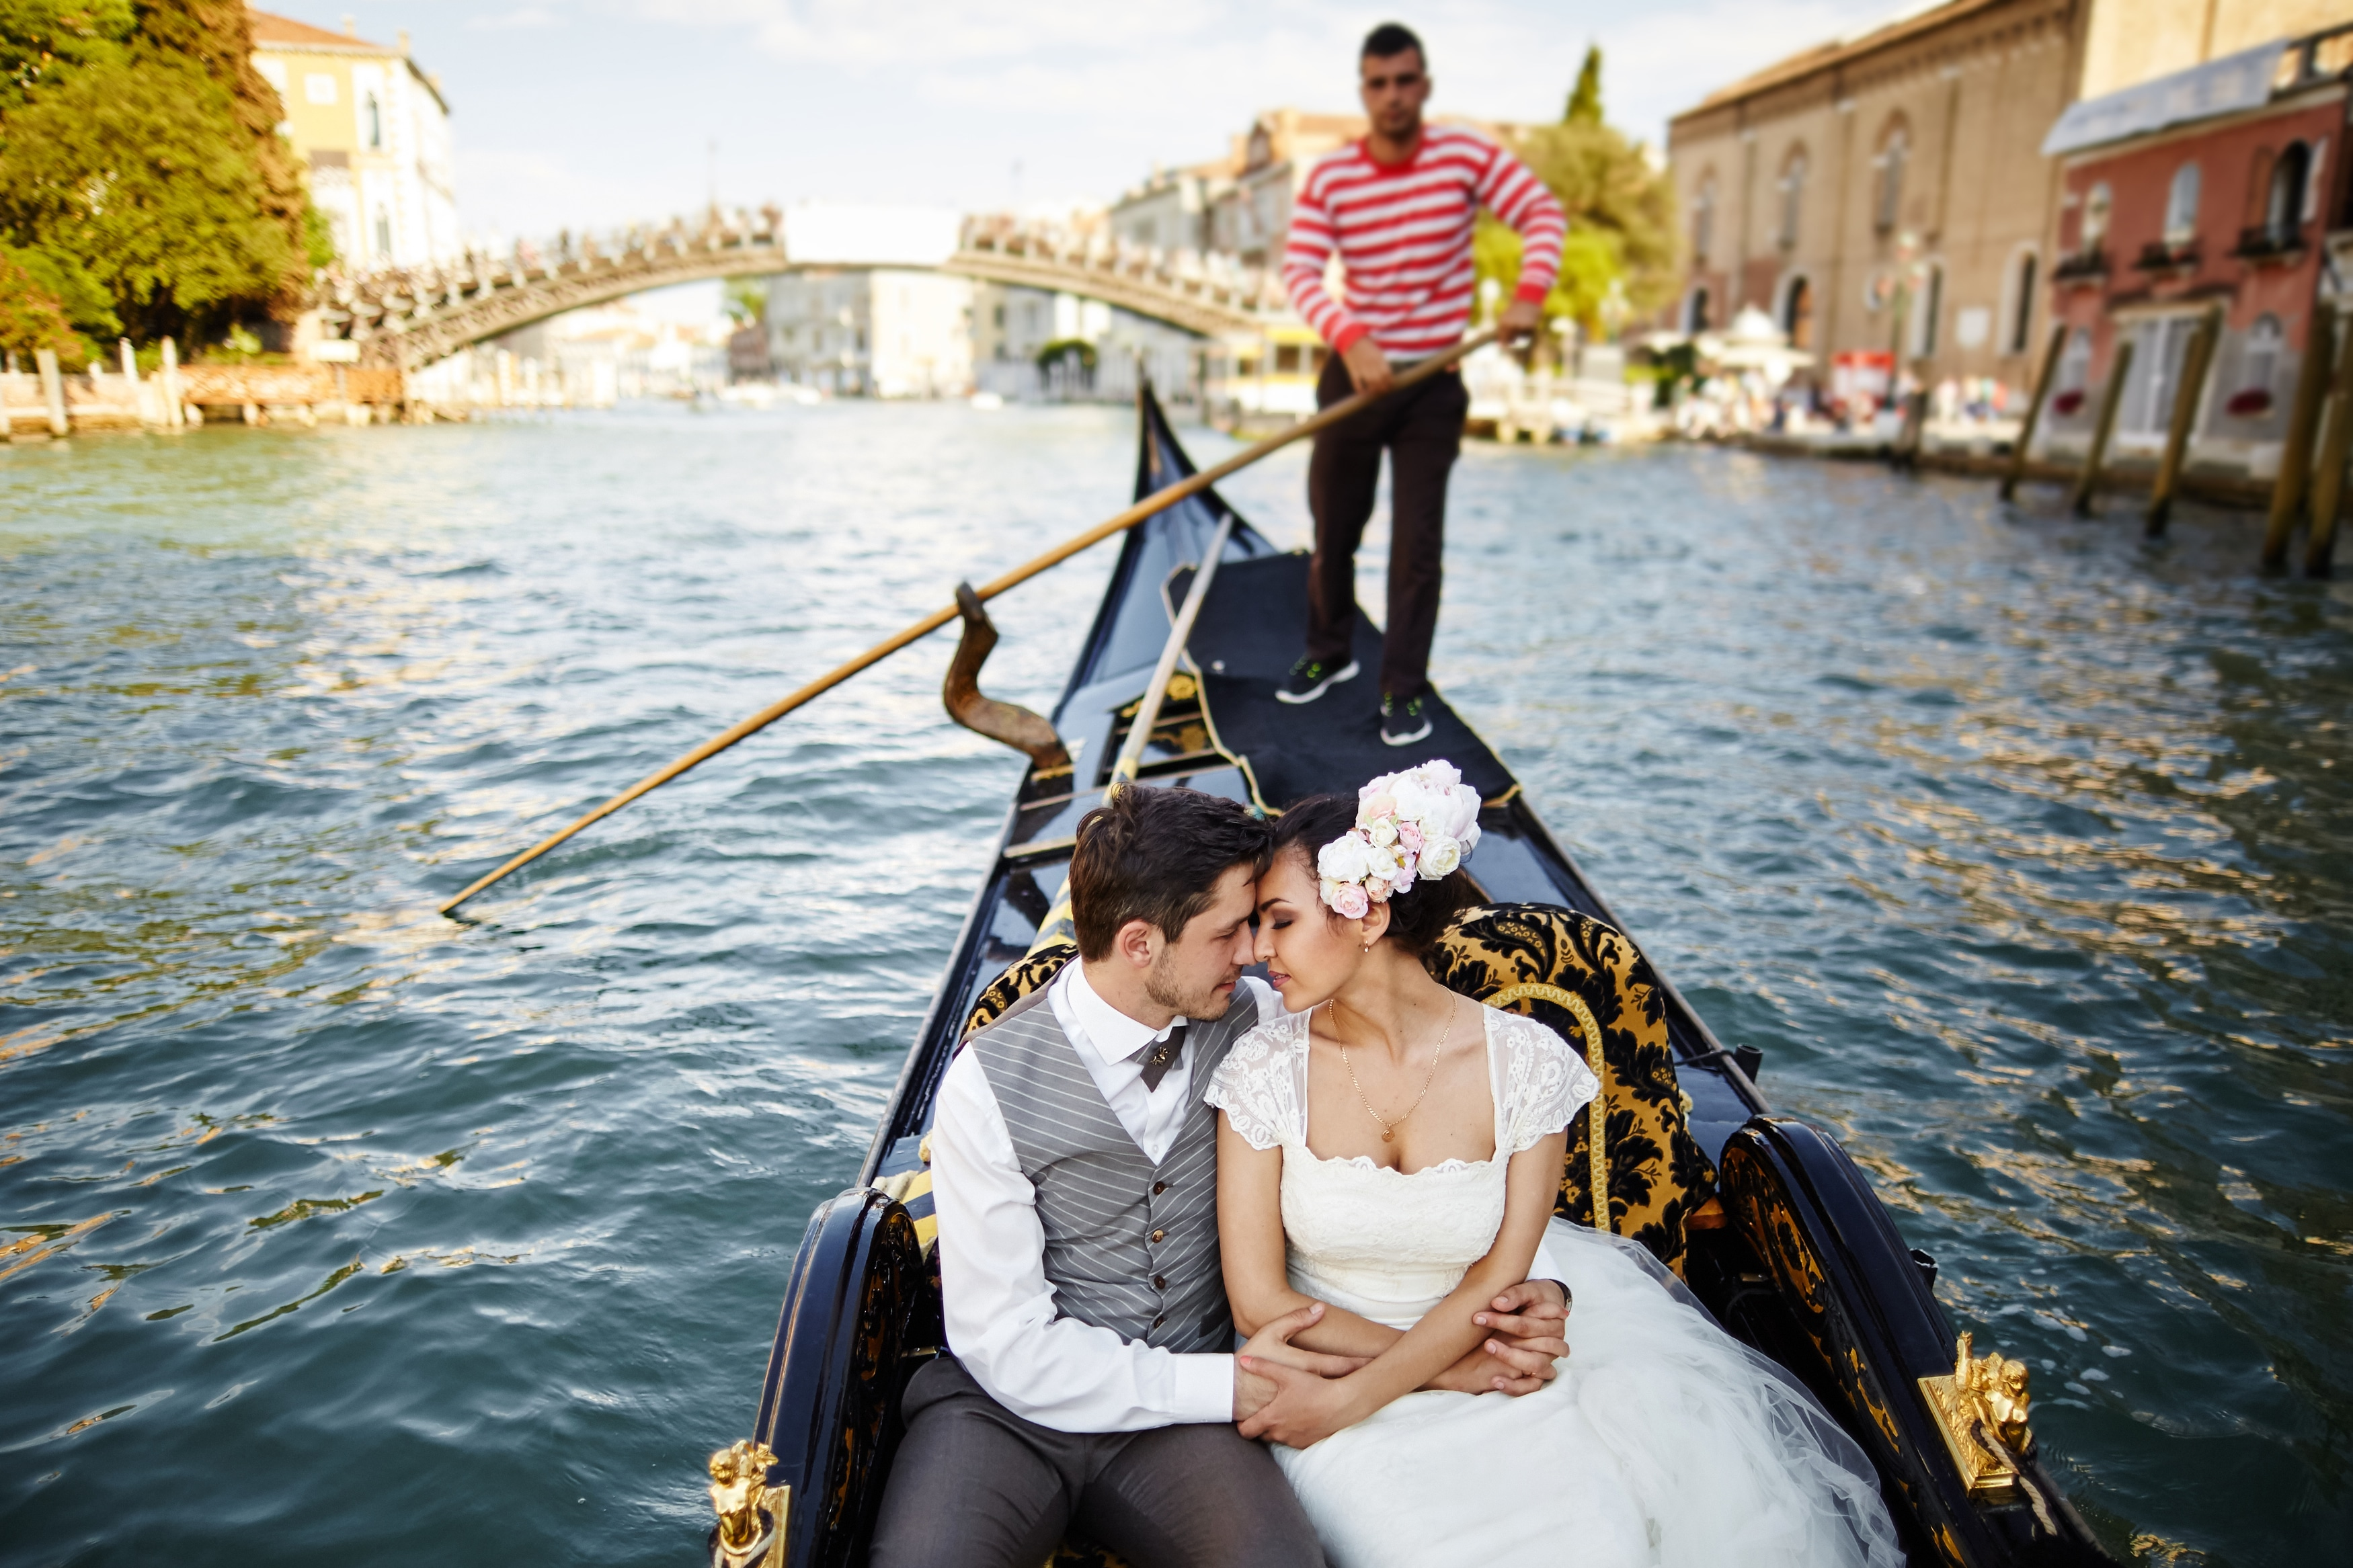 Newlyweds on a gondola in Italy. Photo: Shutterstock